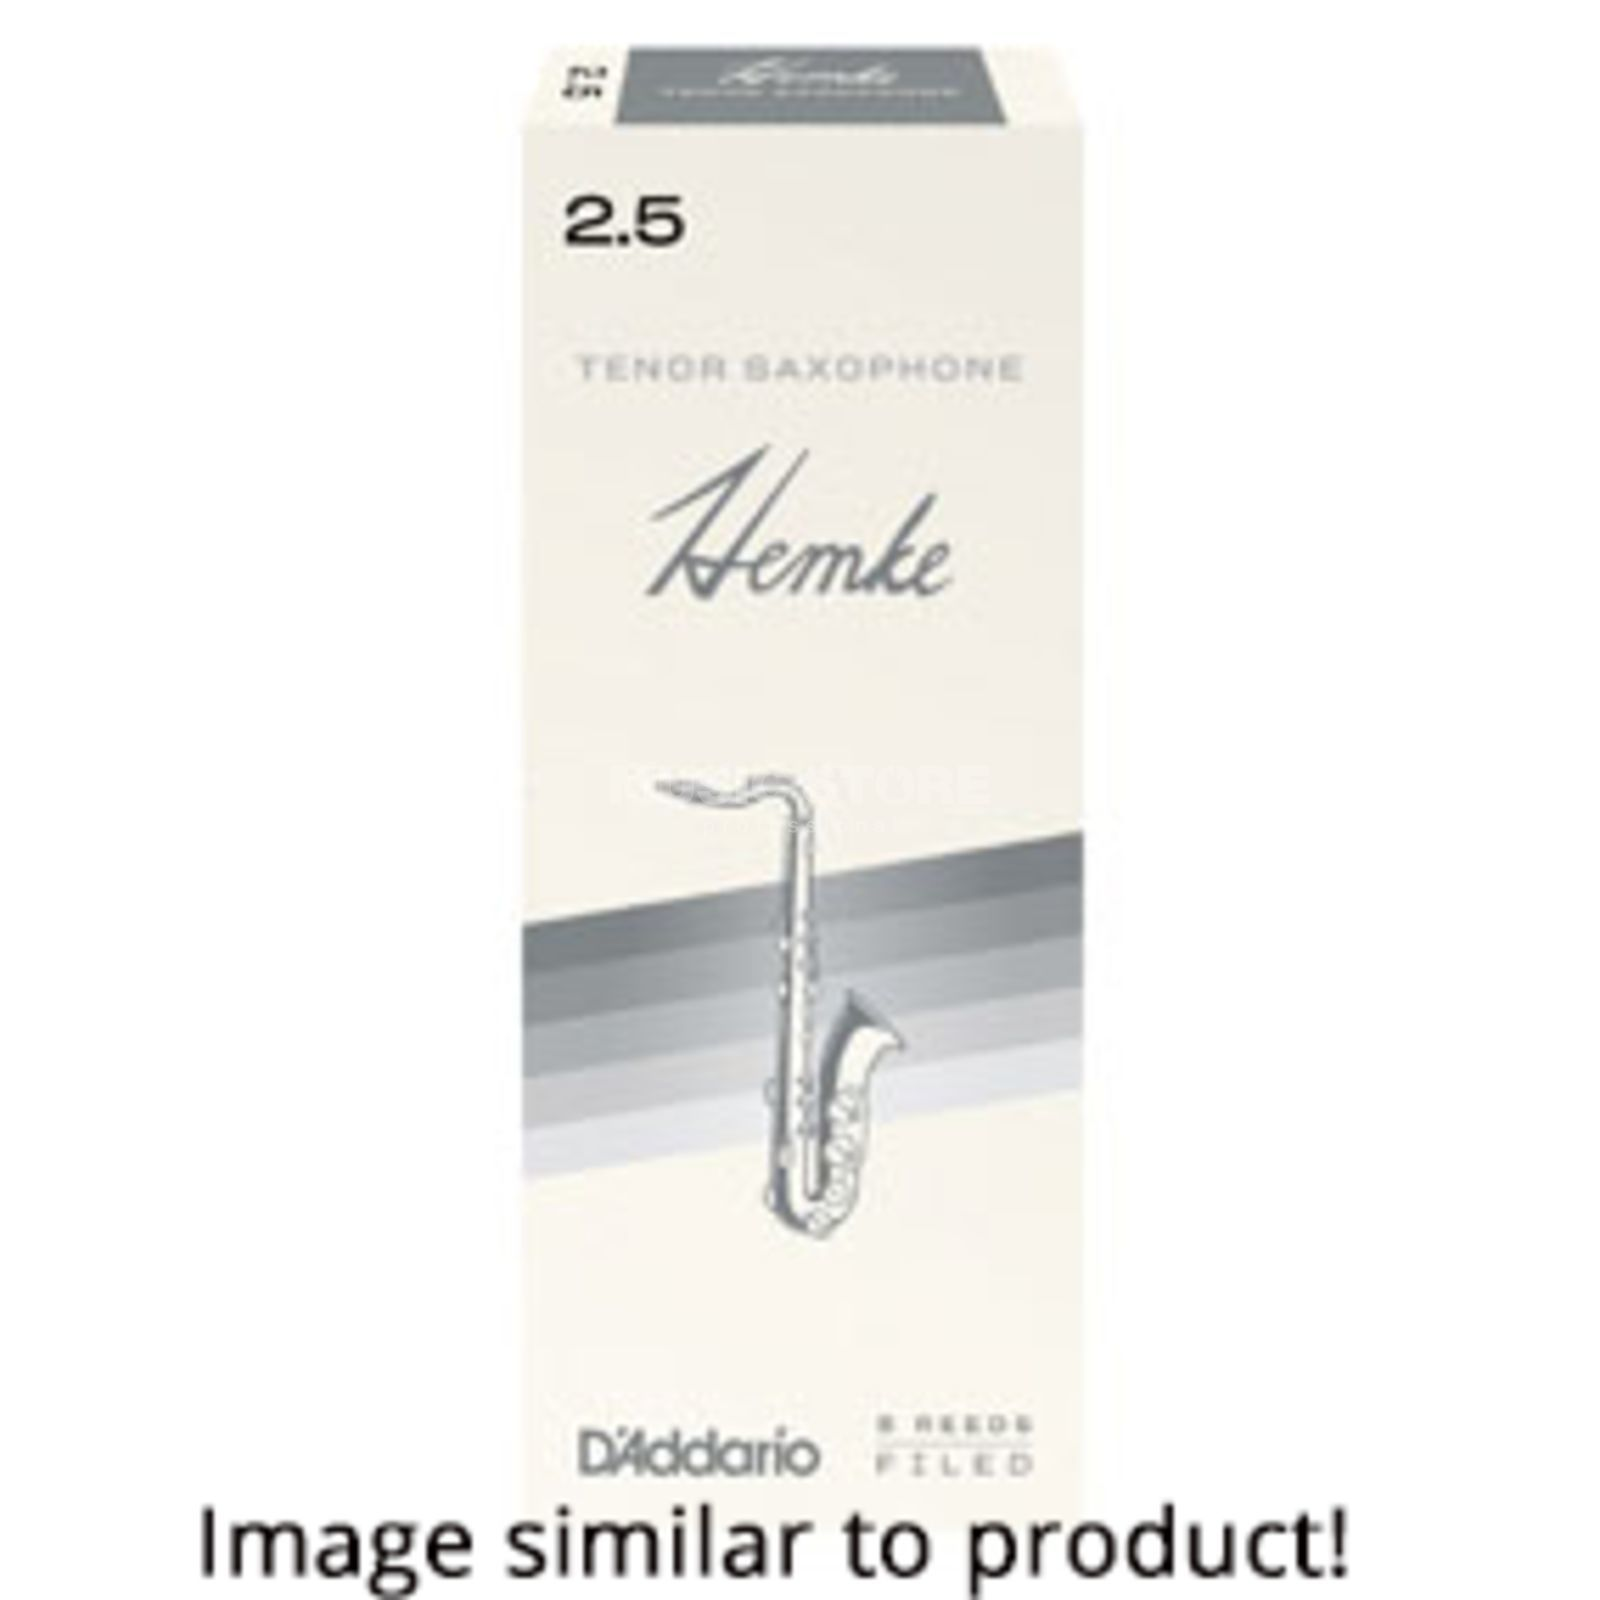 Hemke Tenor Saxophone Reeds 2.5 Box of 5 Product Image